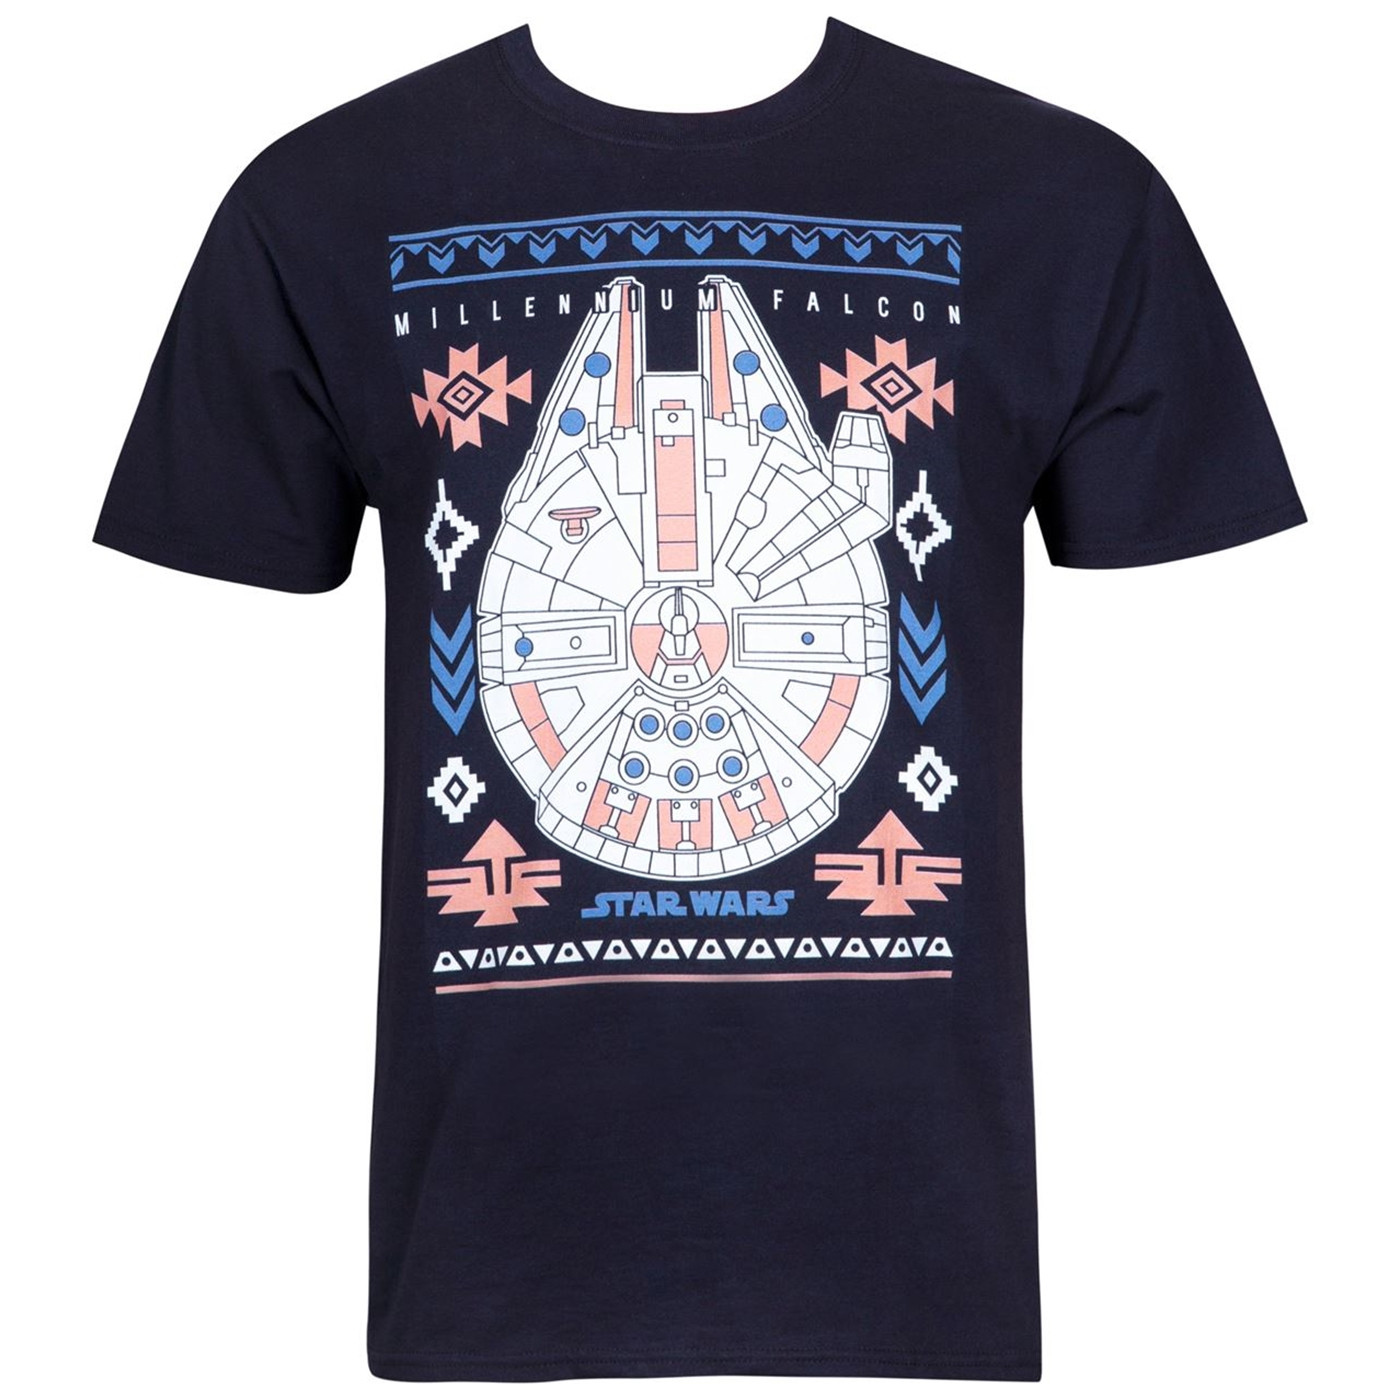 Southwest Millennium Falcon Men's T-Shirt